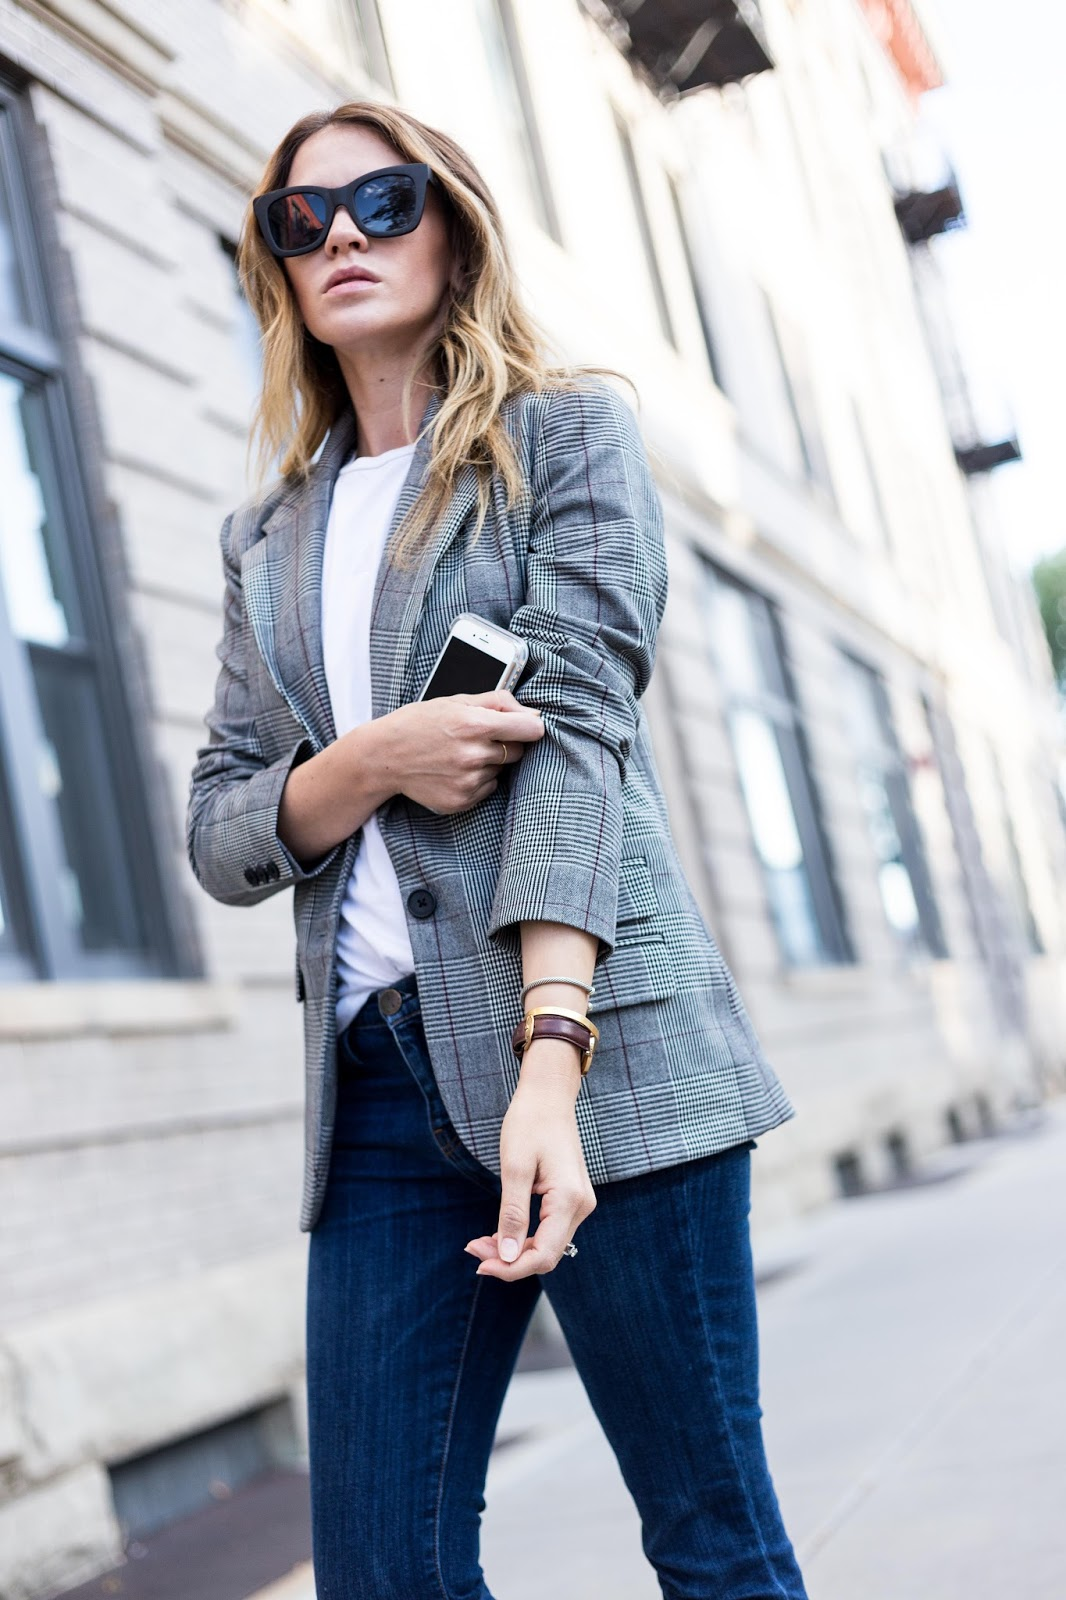 Boyfriend Blazer With Skinny Jeans - Boyfriend Blazer by Colorado fashion blogger Eat Pray Wear Love